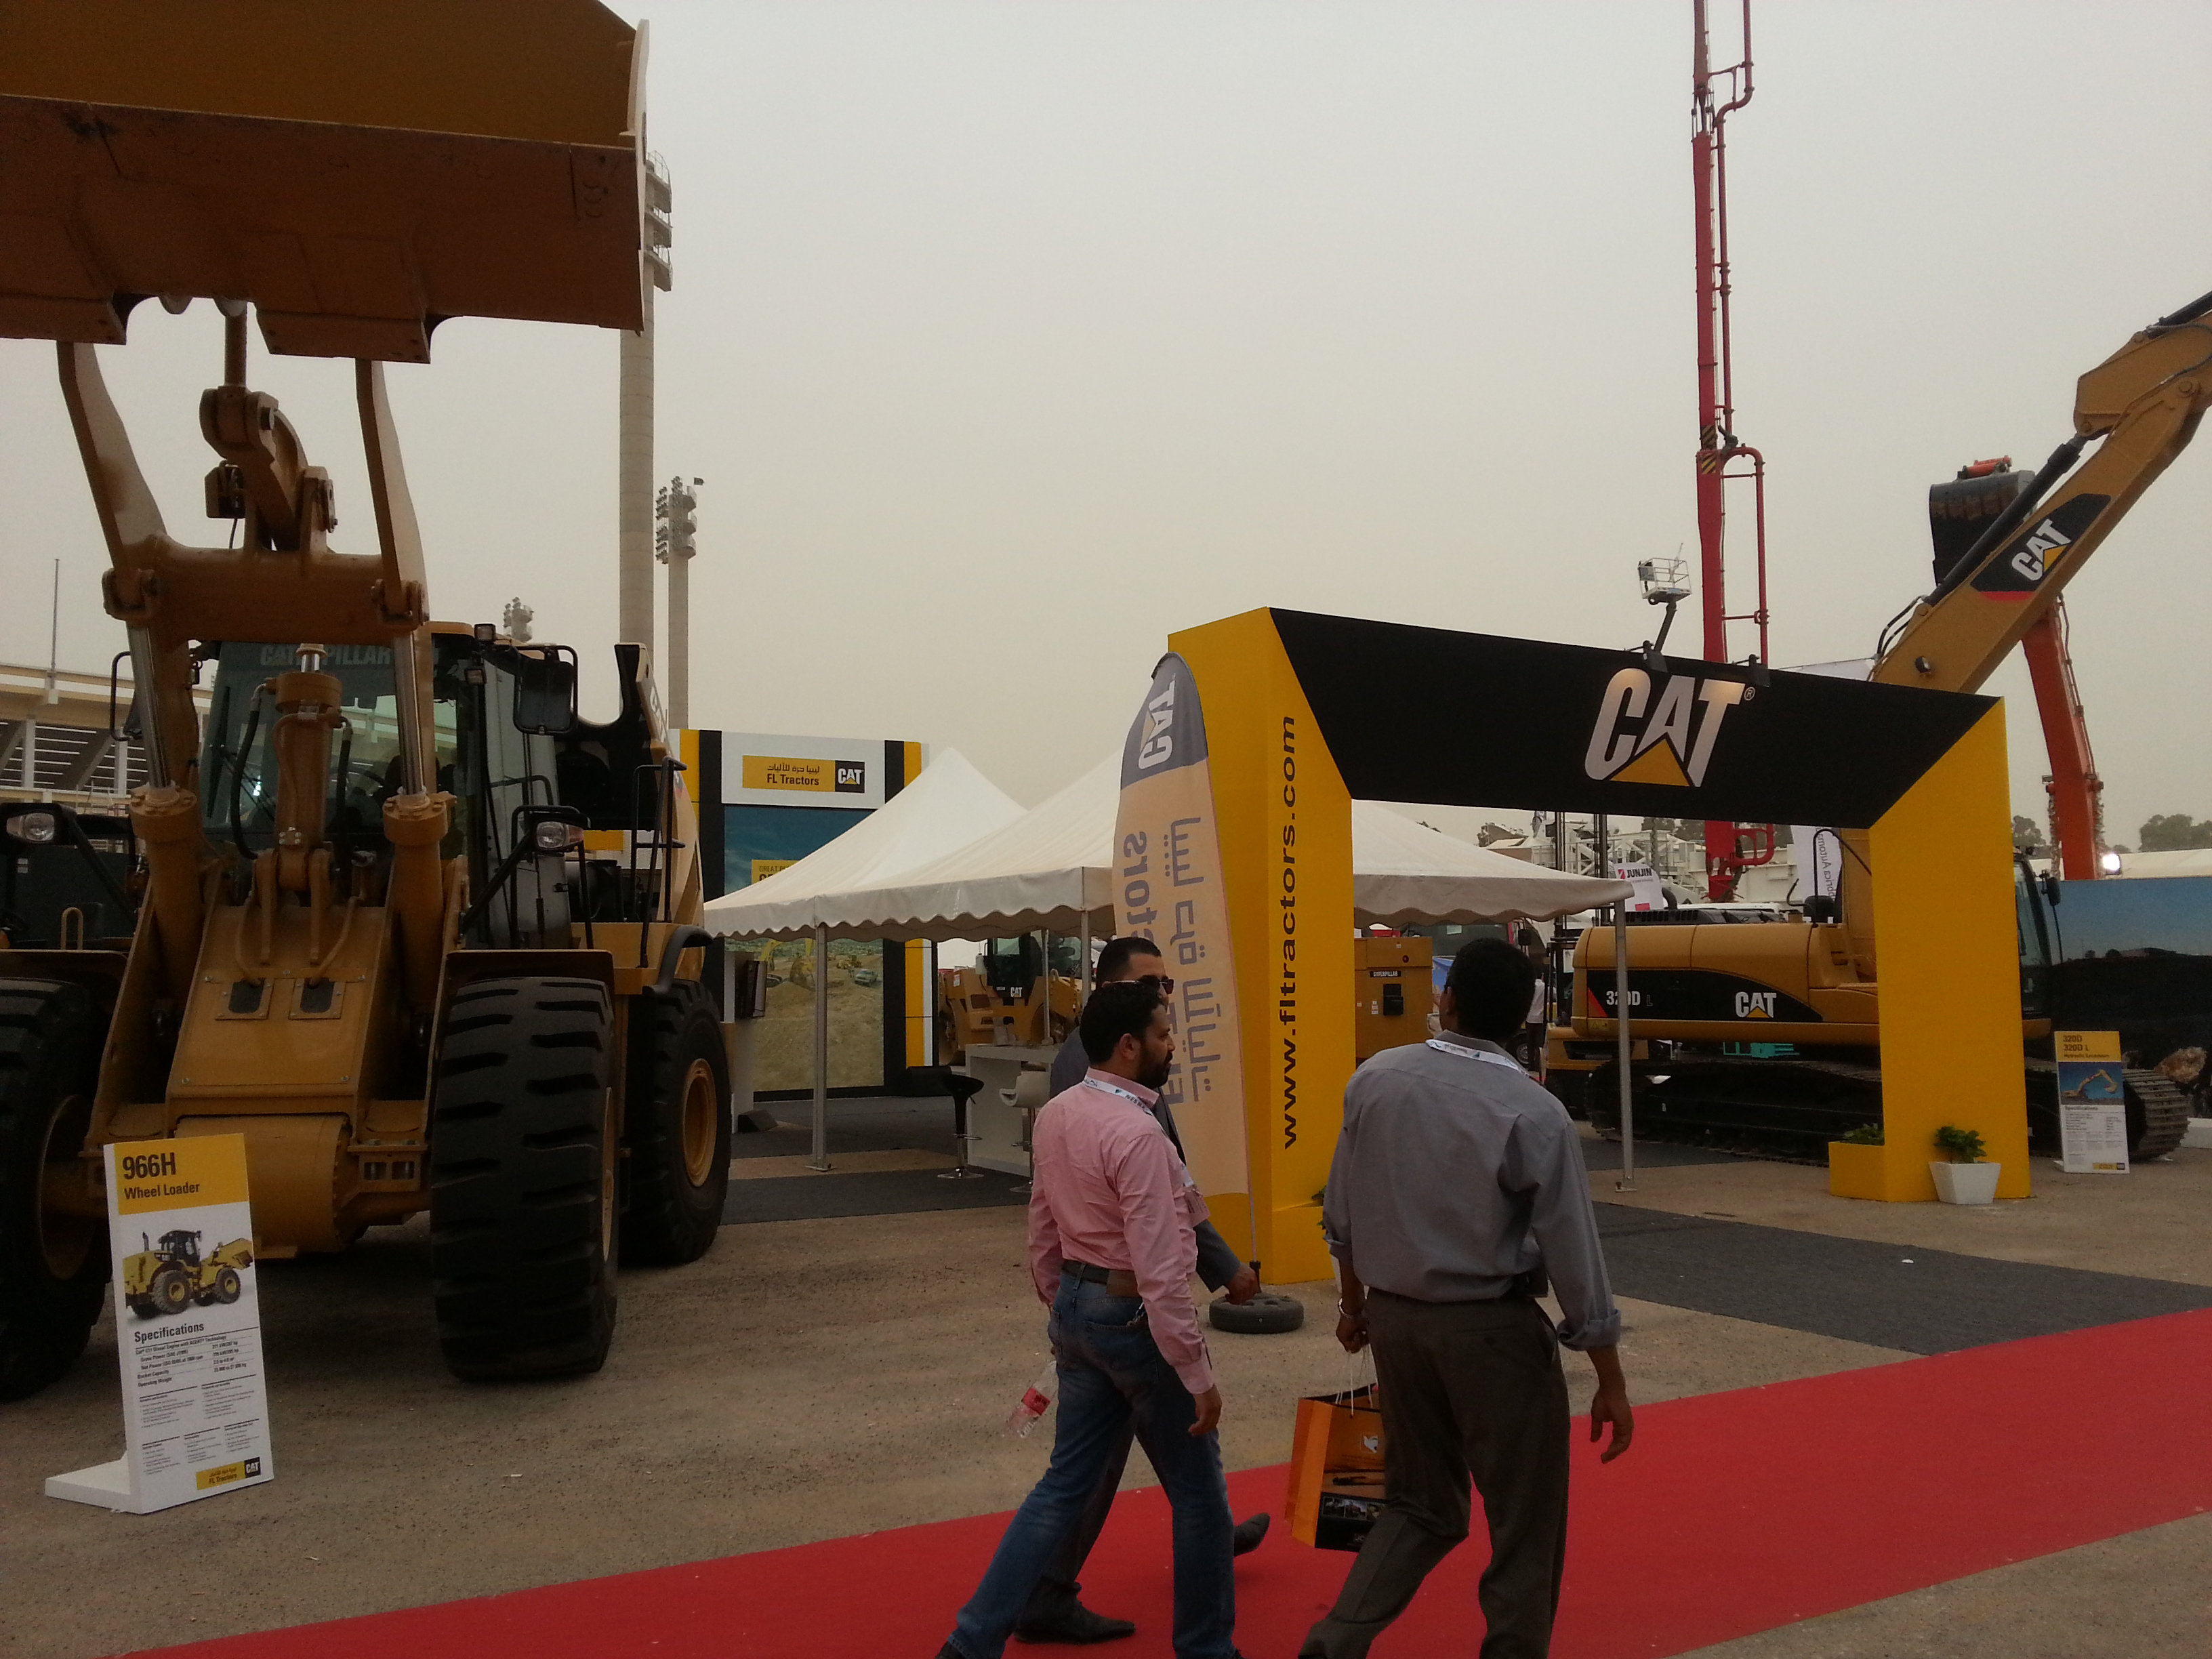 Caterpillar was one of very few US companies present at Libya Build 2013